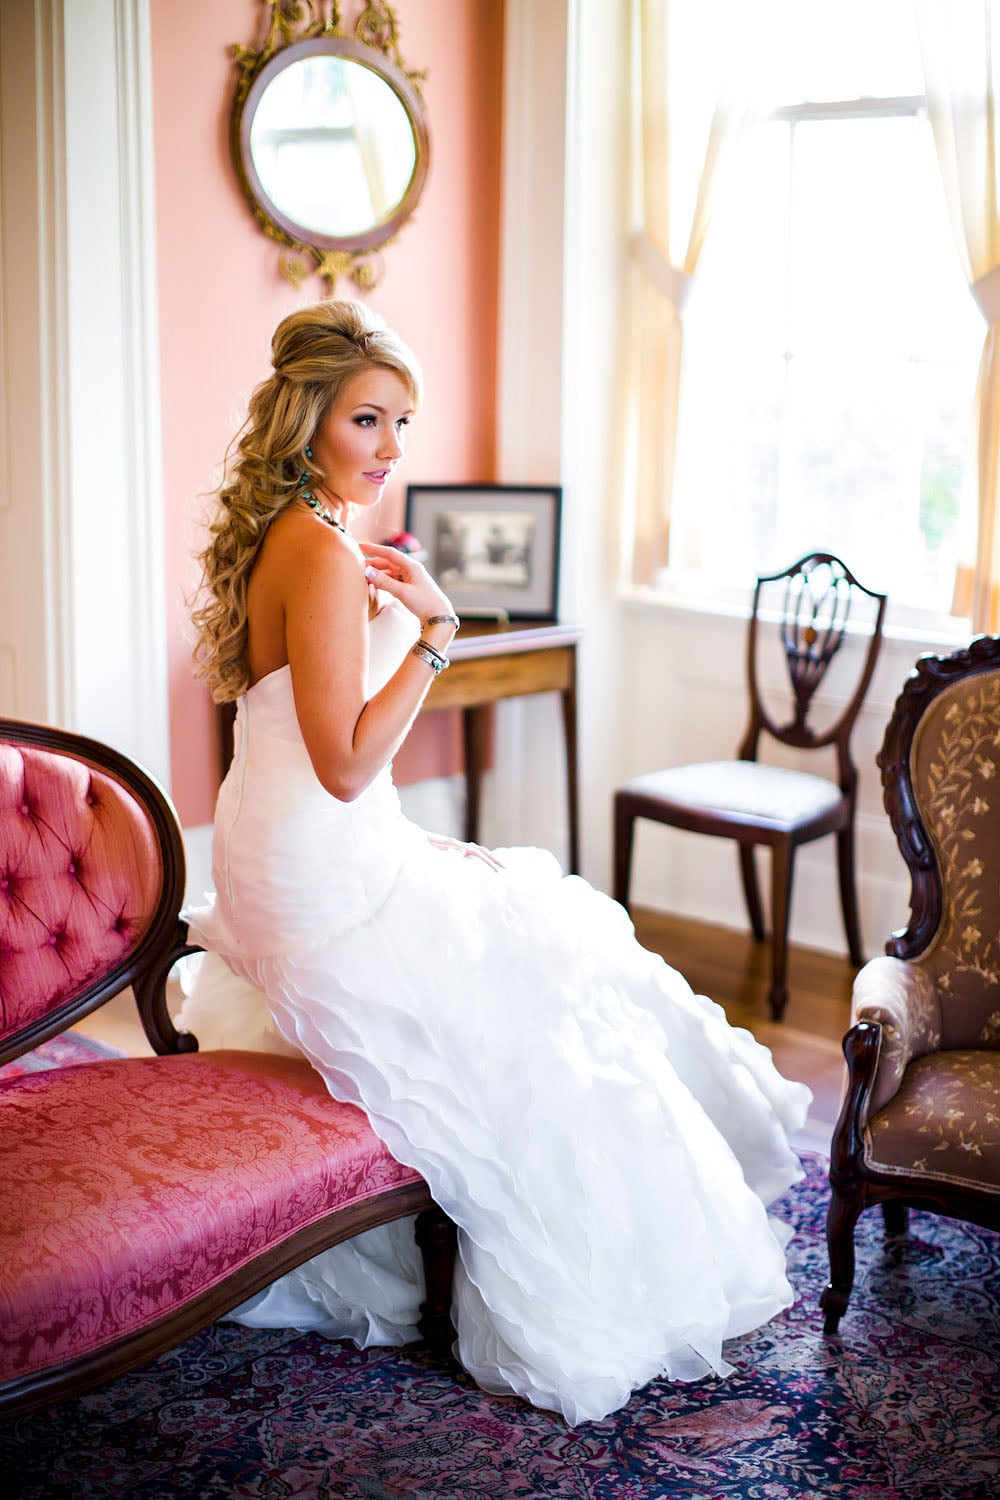 austin-wedding-bridal-2.jpg